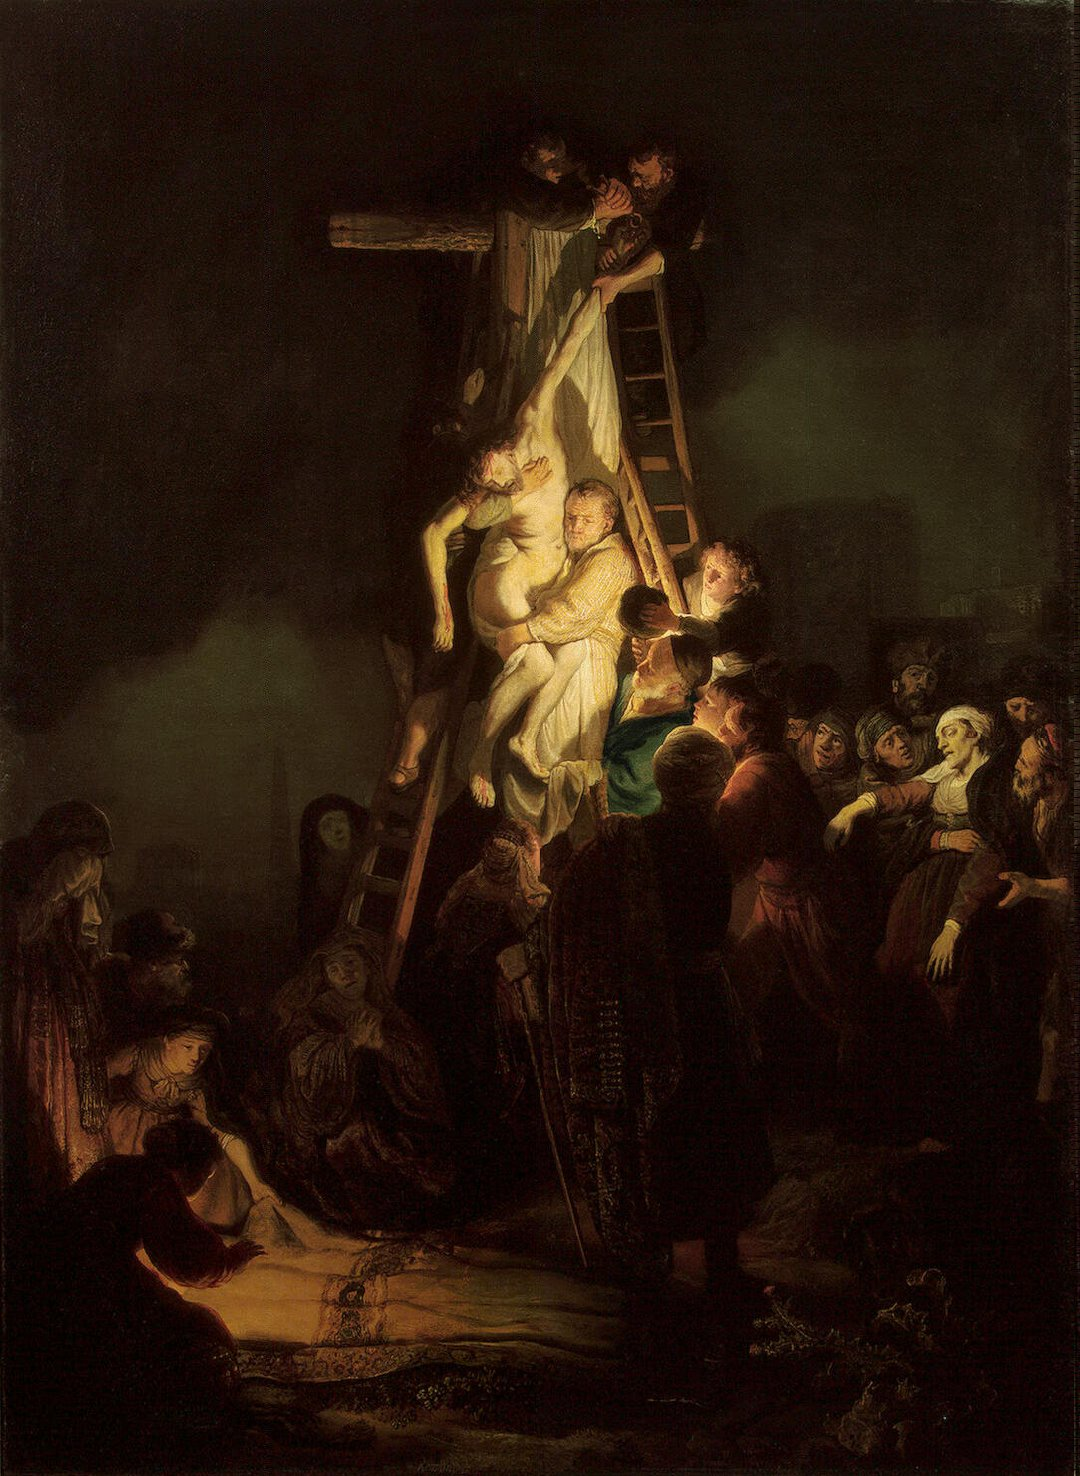 Rembrandt_Harmensz._van_Rijn-ZZZ-Descent_from_the_Cross